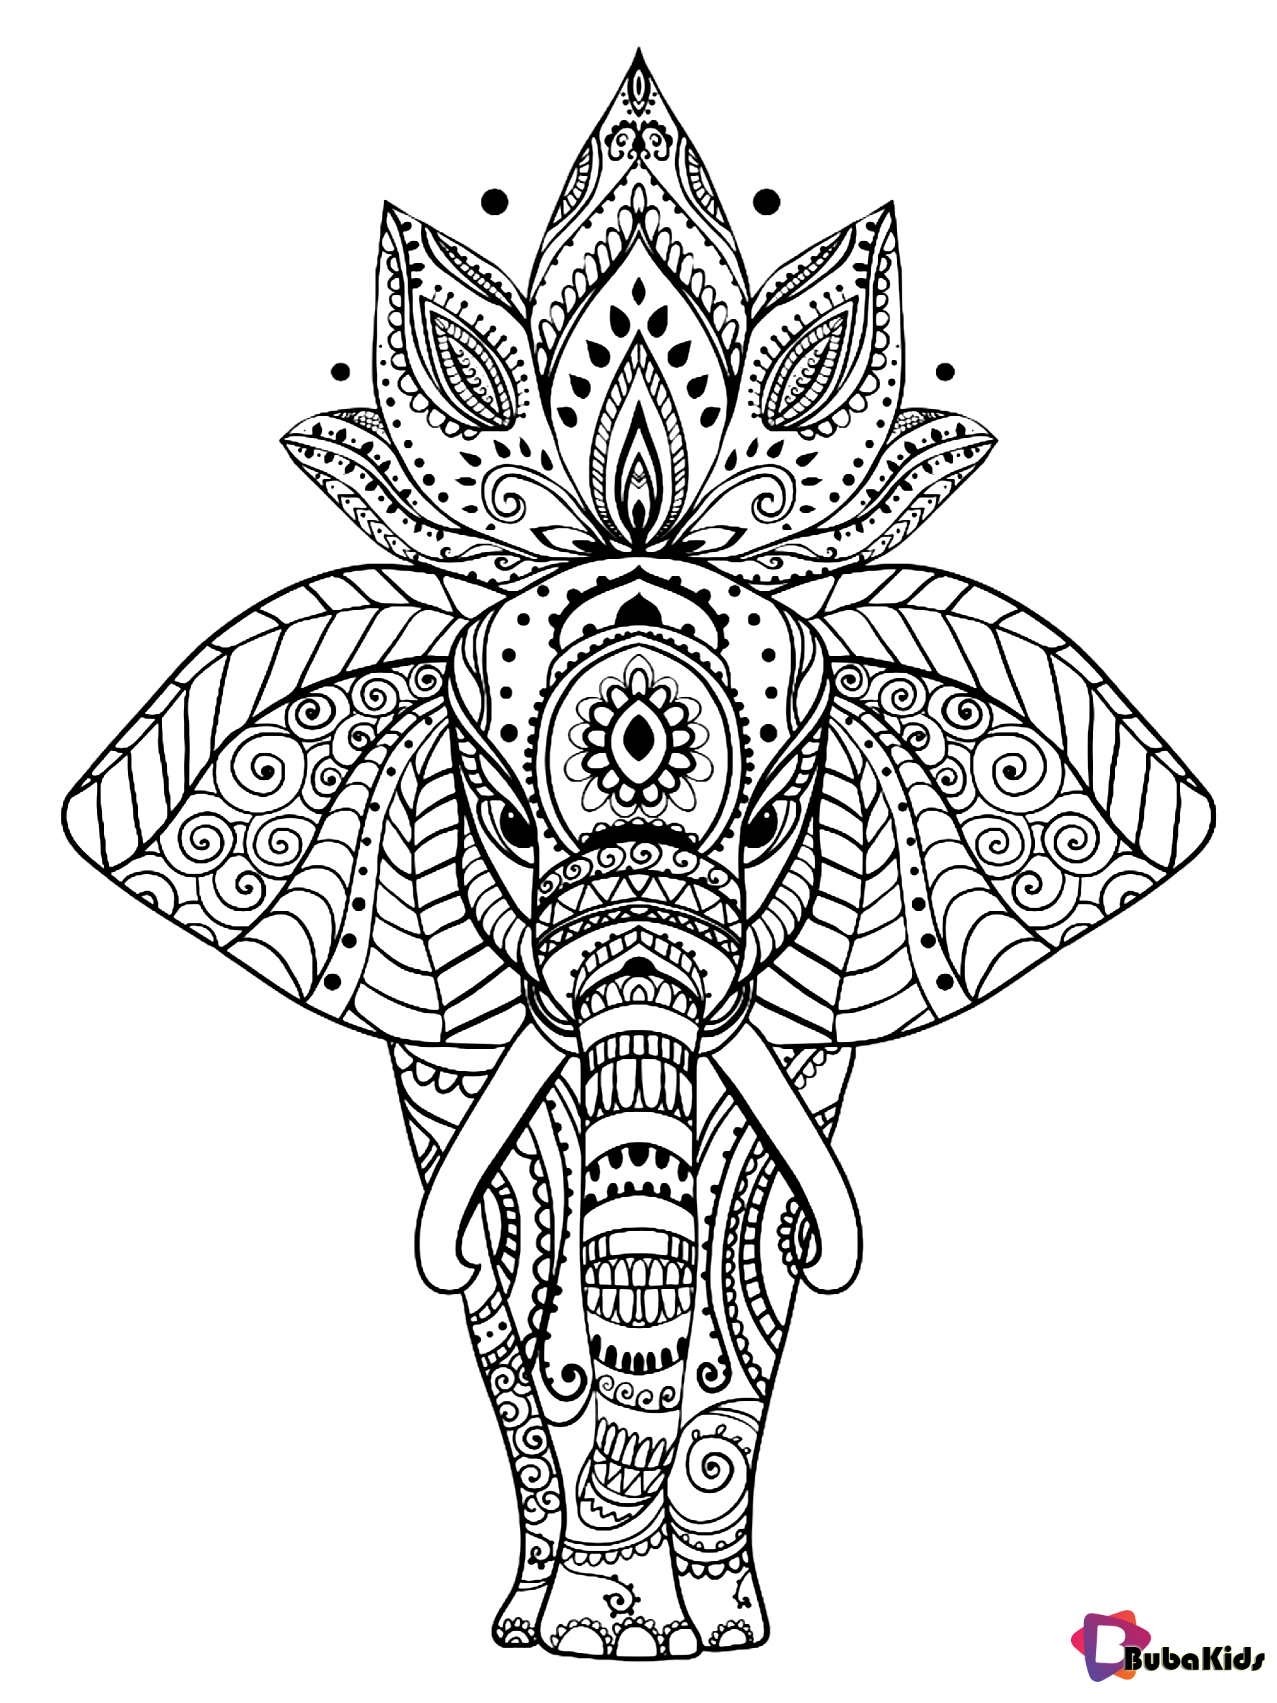 Pin By Adrian Adrian On Mandala Coloring Pages Mandala Coloring Pages Elephant Coloring Page Mandala Coloring